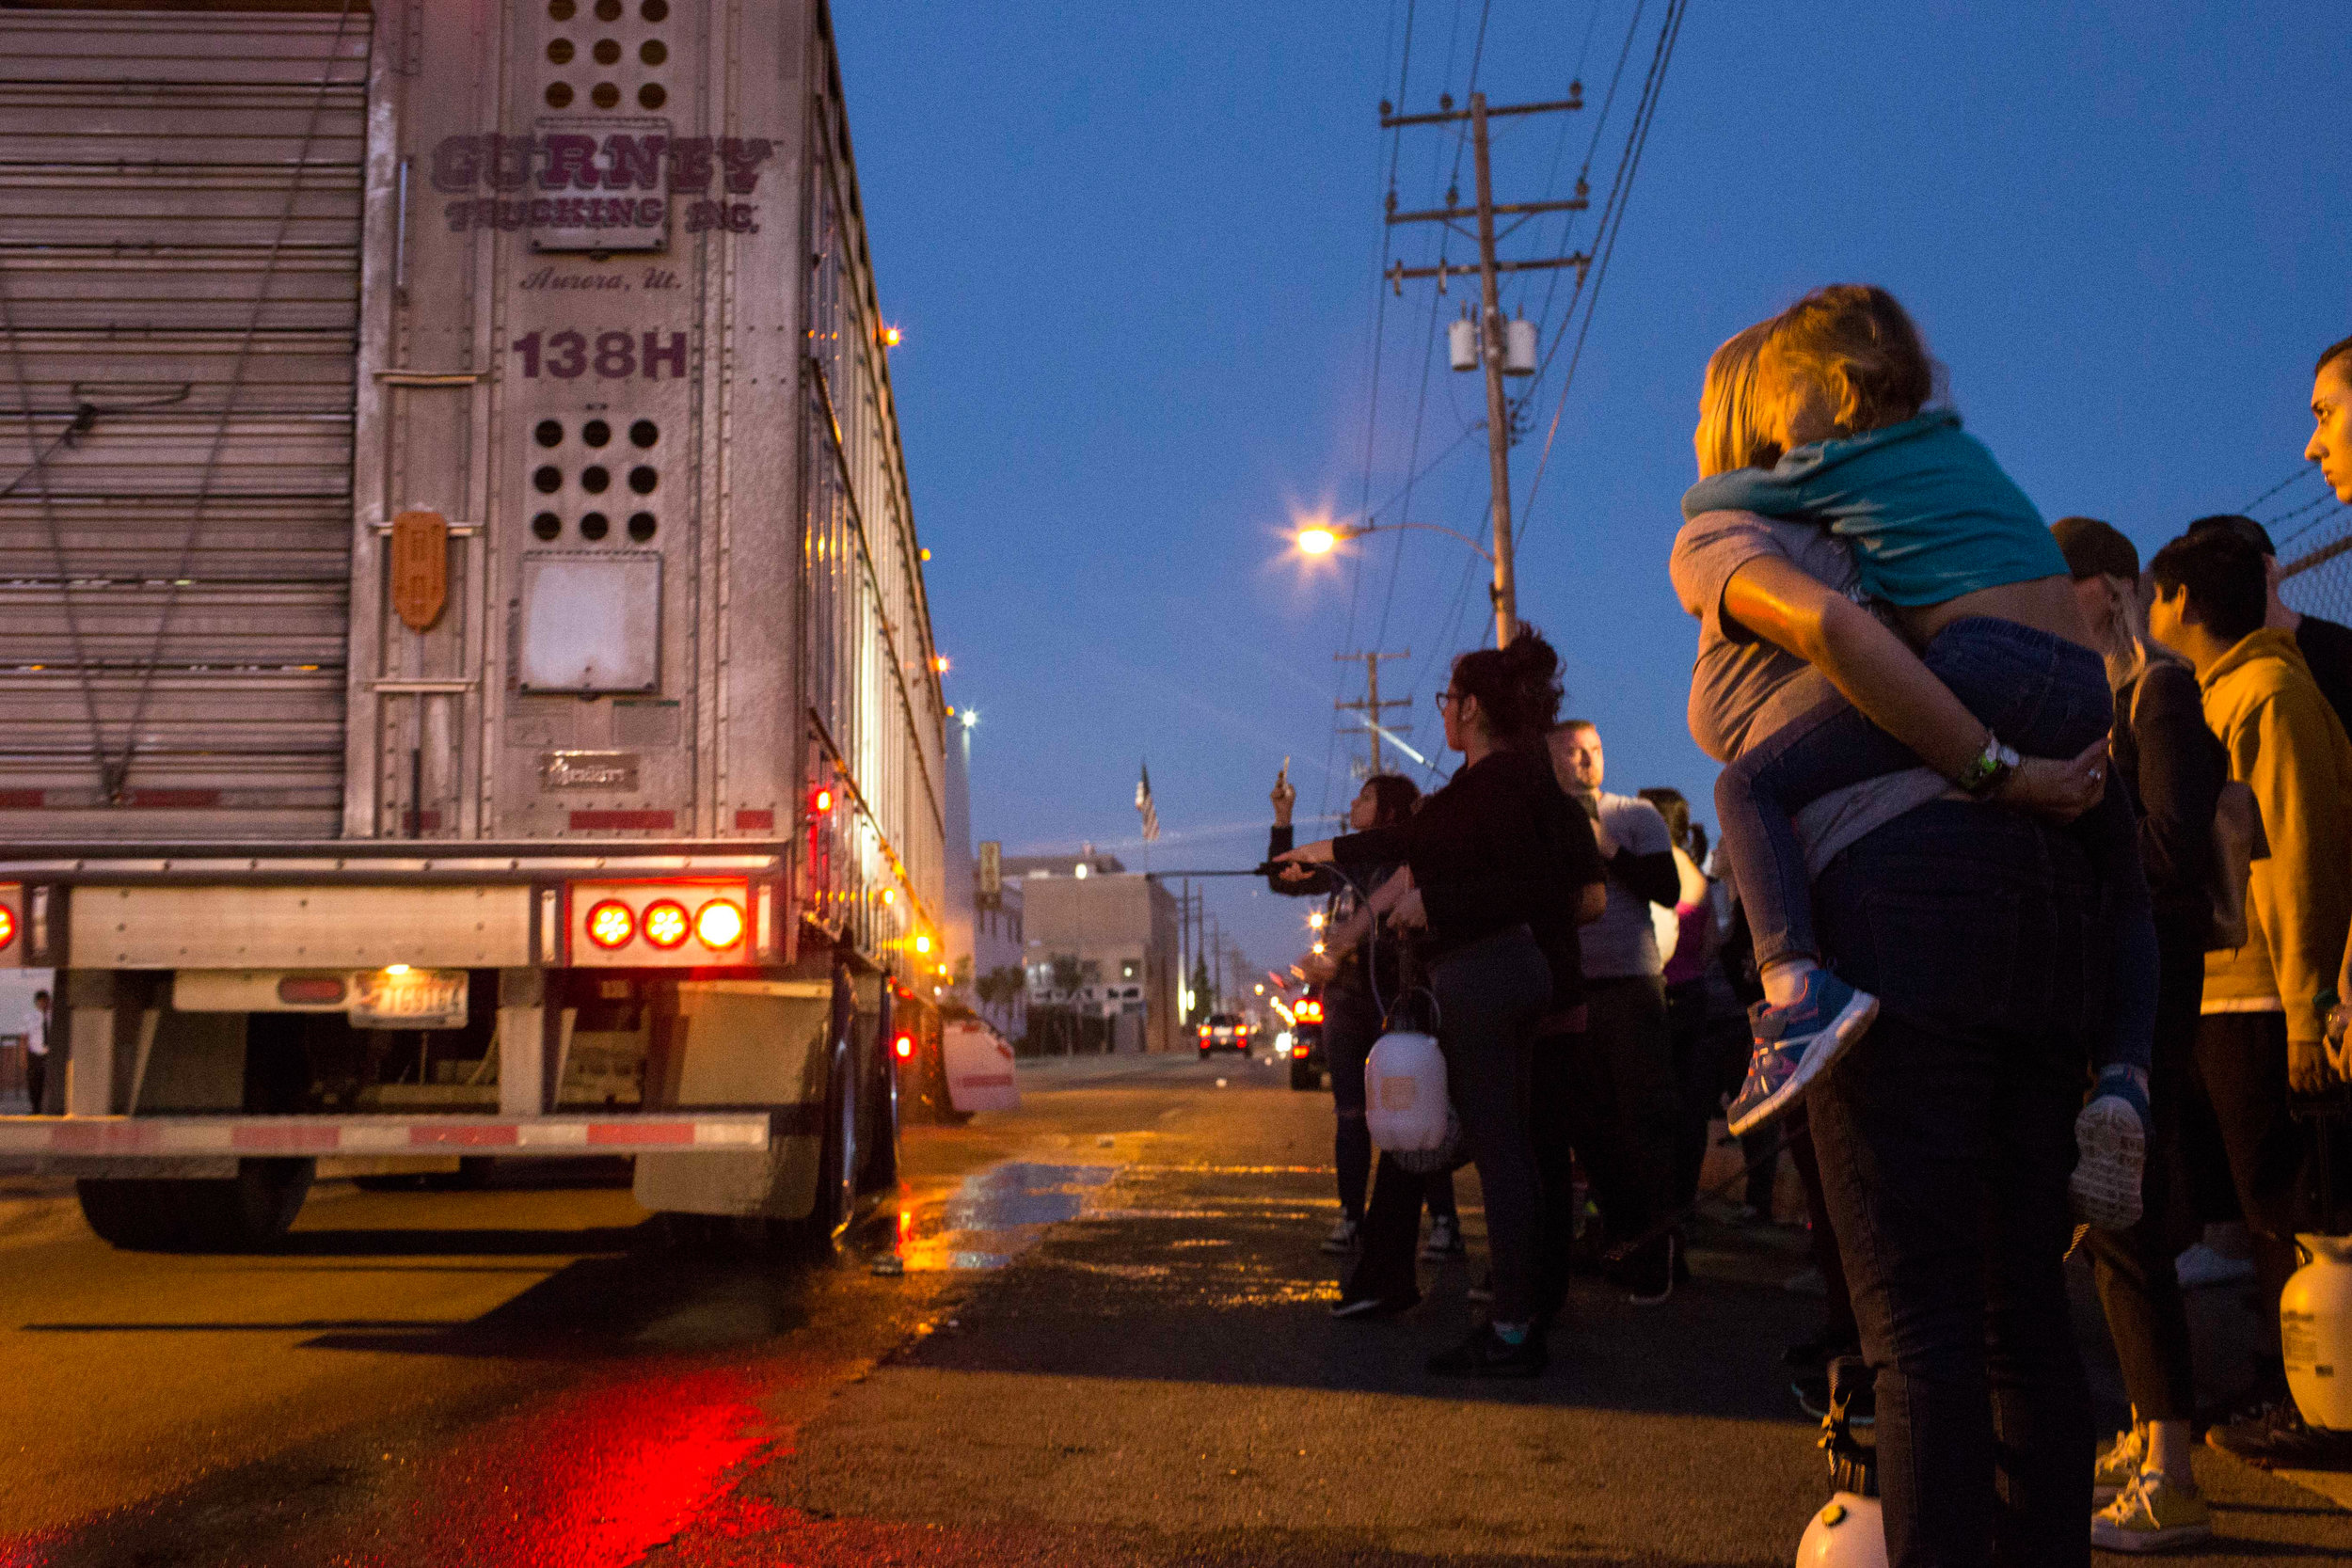 Heidi Menze, holding her daughter, Alexis (5) on her back,  watches as a truck pulls in through the gate of Farmer John, a slaughterhouse in Vernon, CA, carrying pigs destined for slaughter on April 30 2017 photo by Ruth Iorio